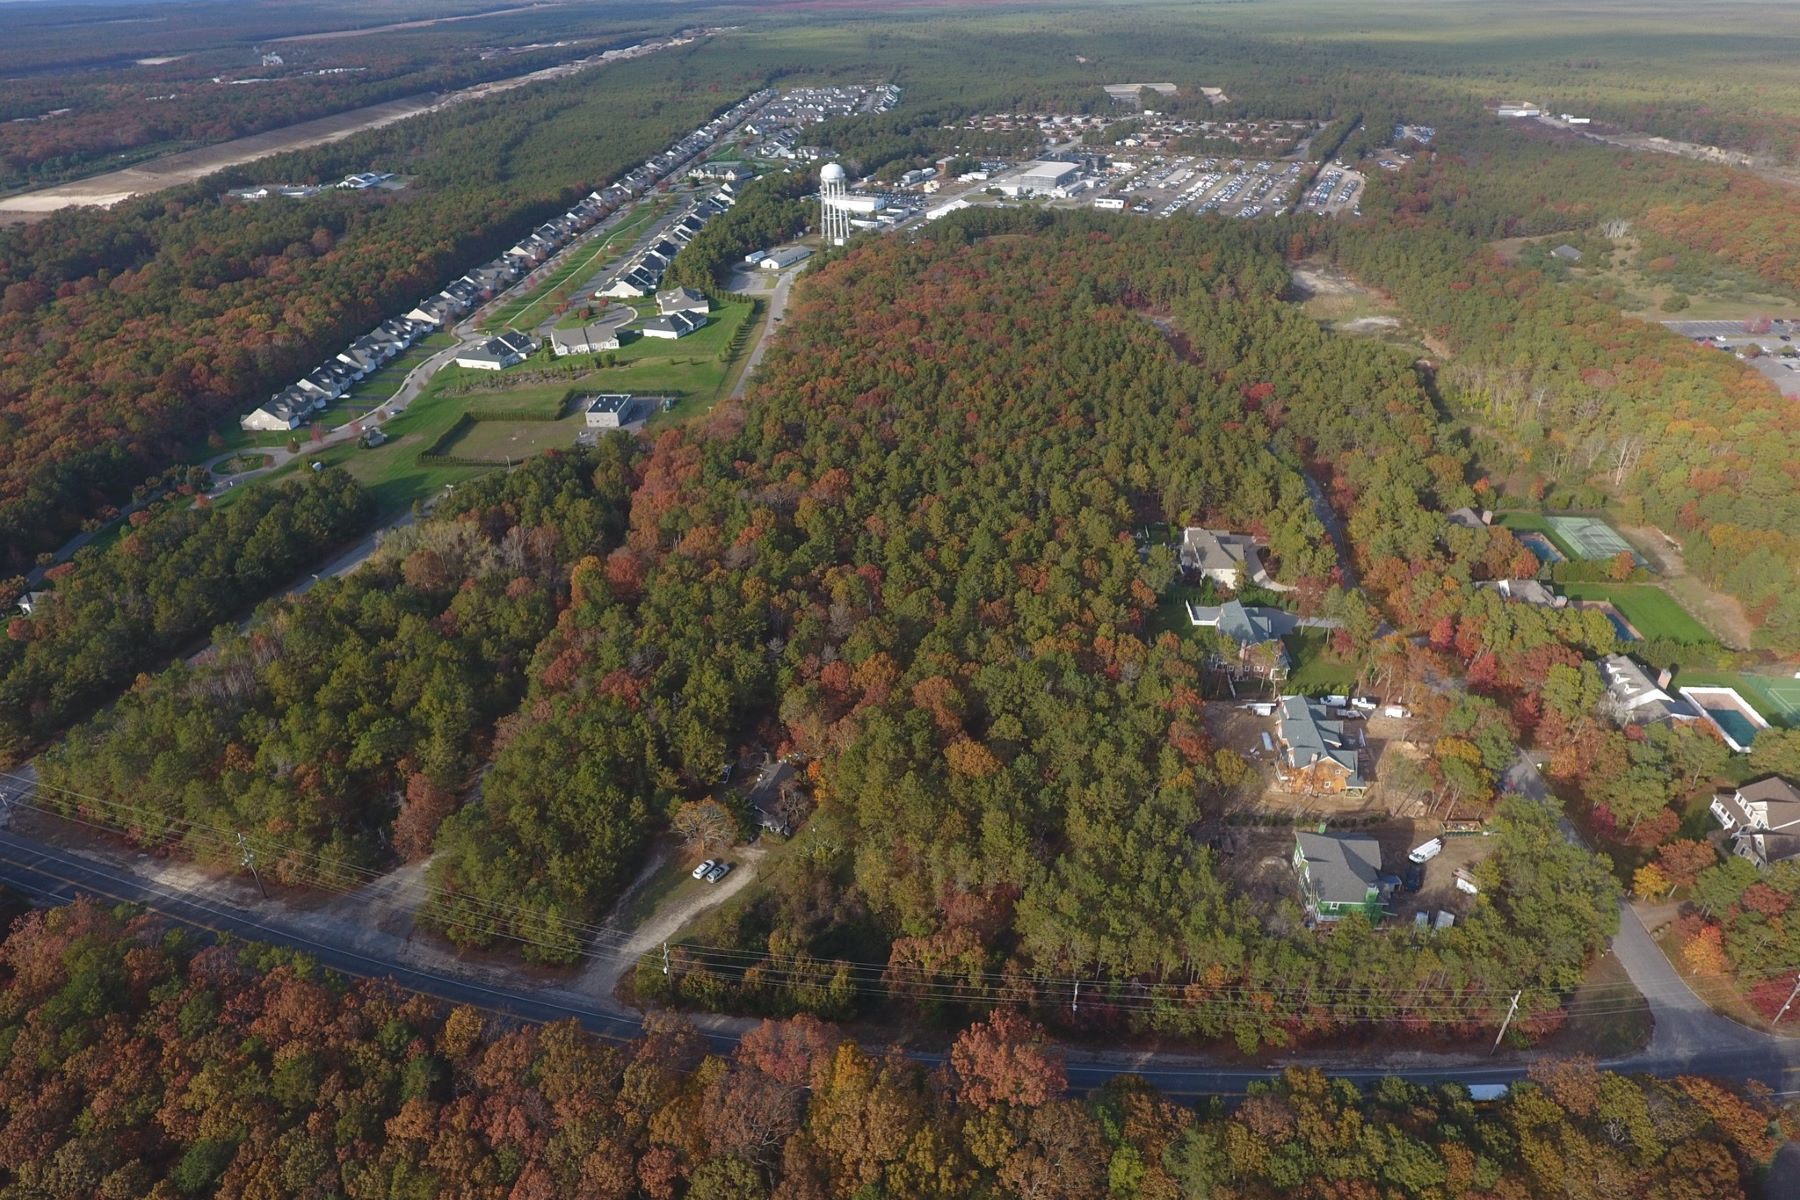 Single Family Homes for Sale at Westhampton 92 Old Country Rd Westhampton, New York 11977 United States